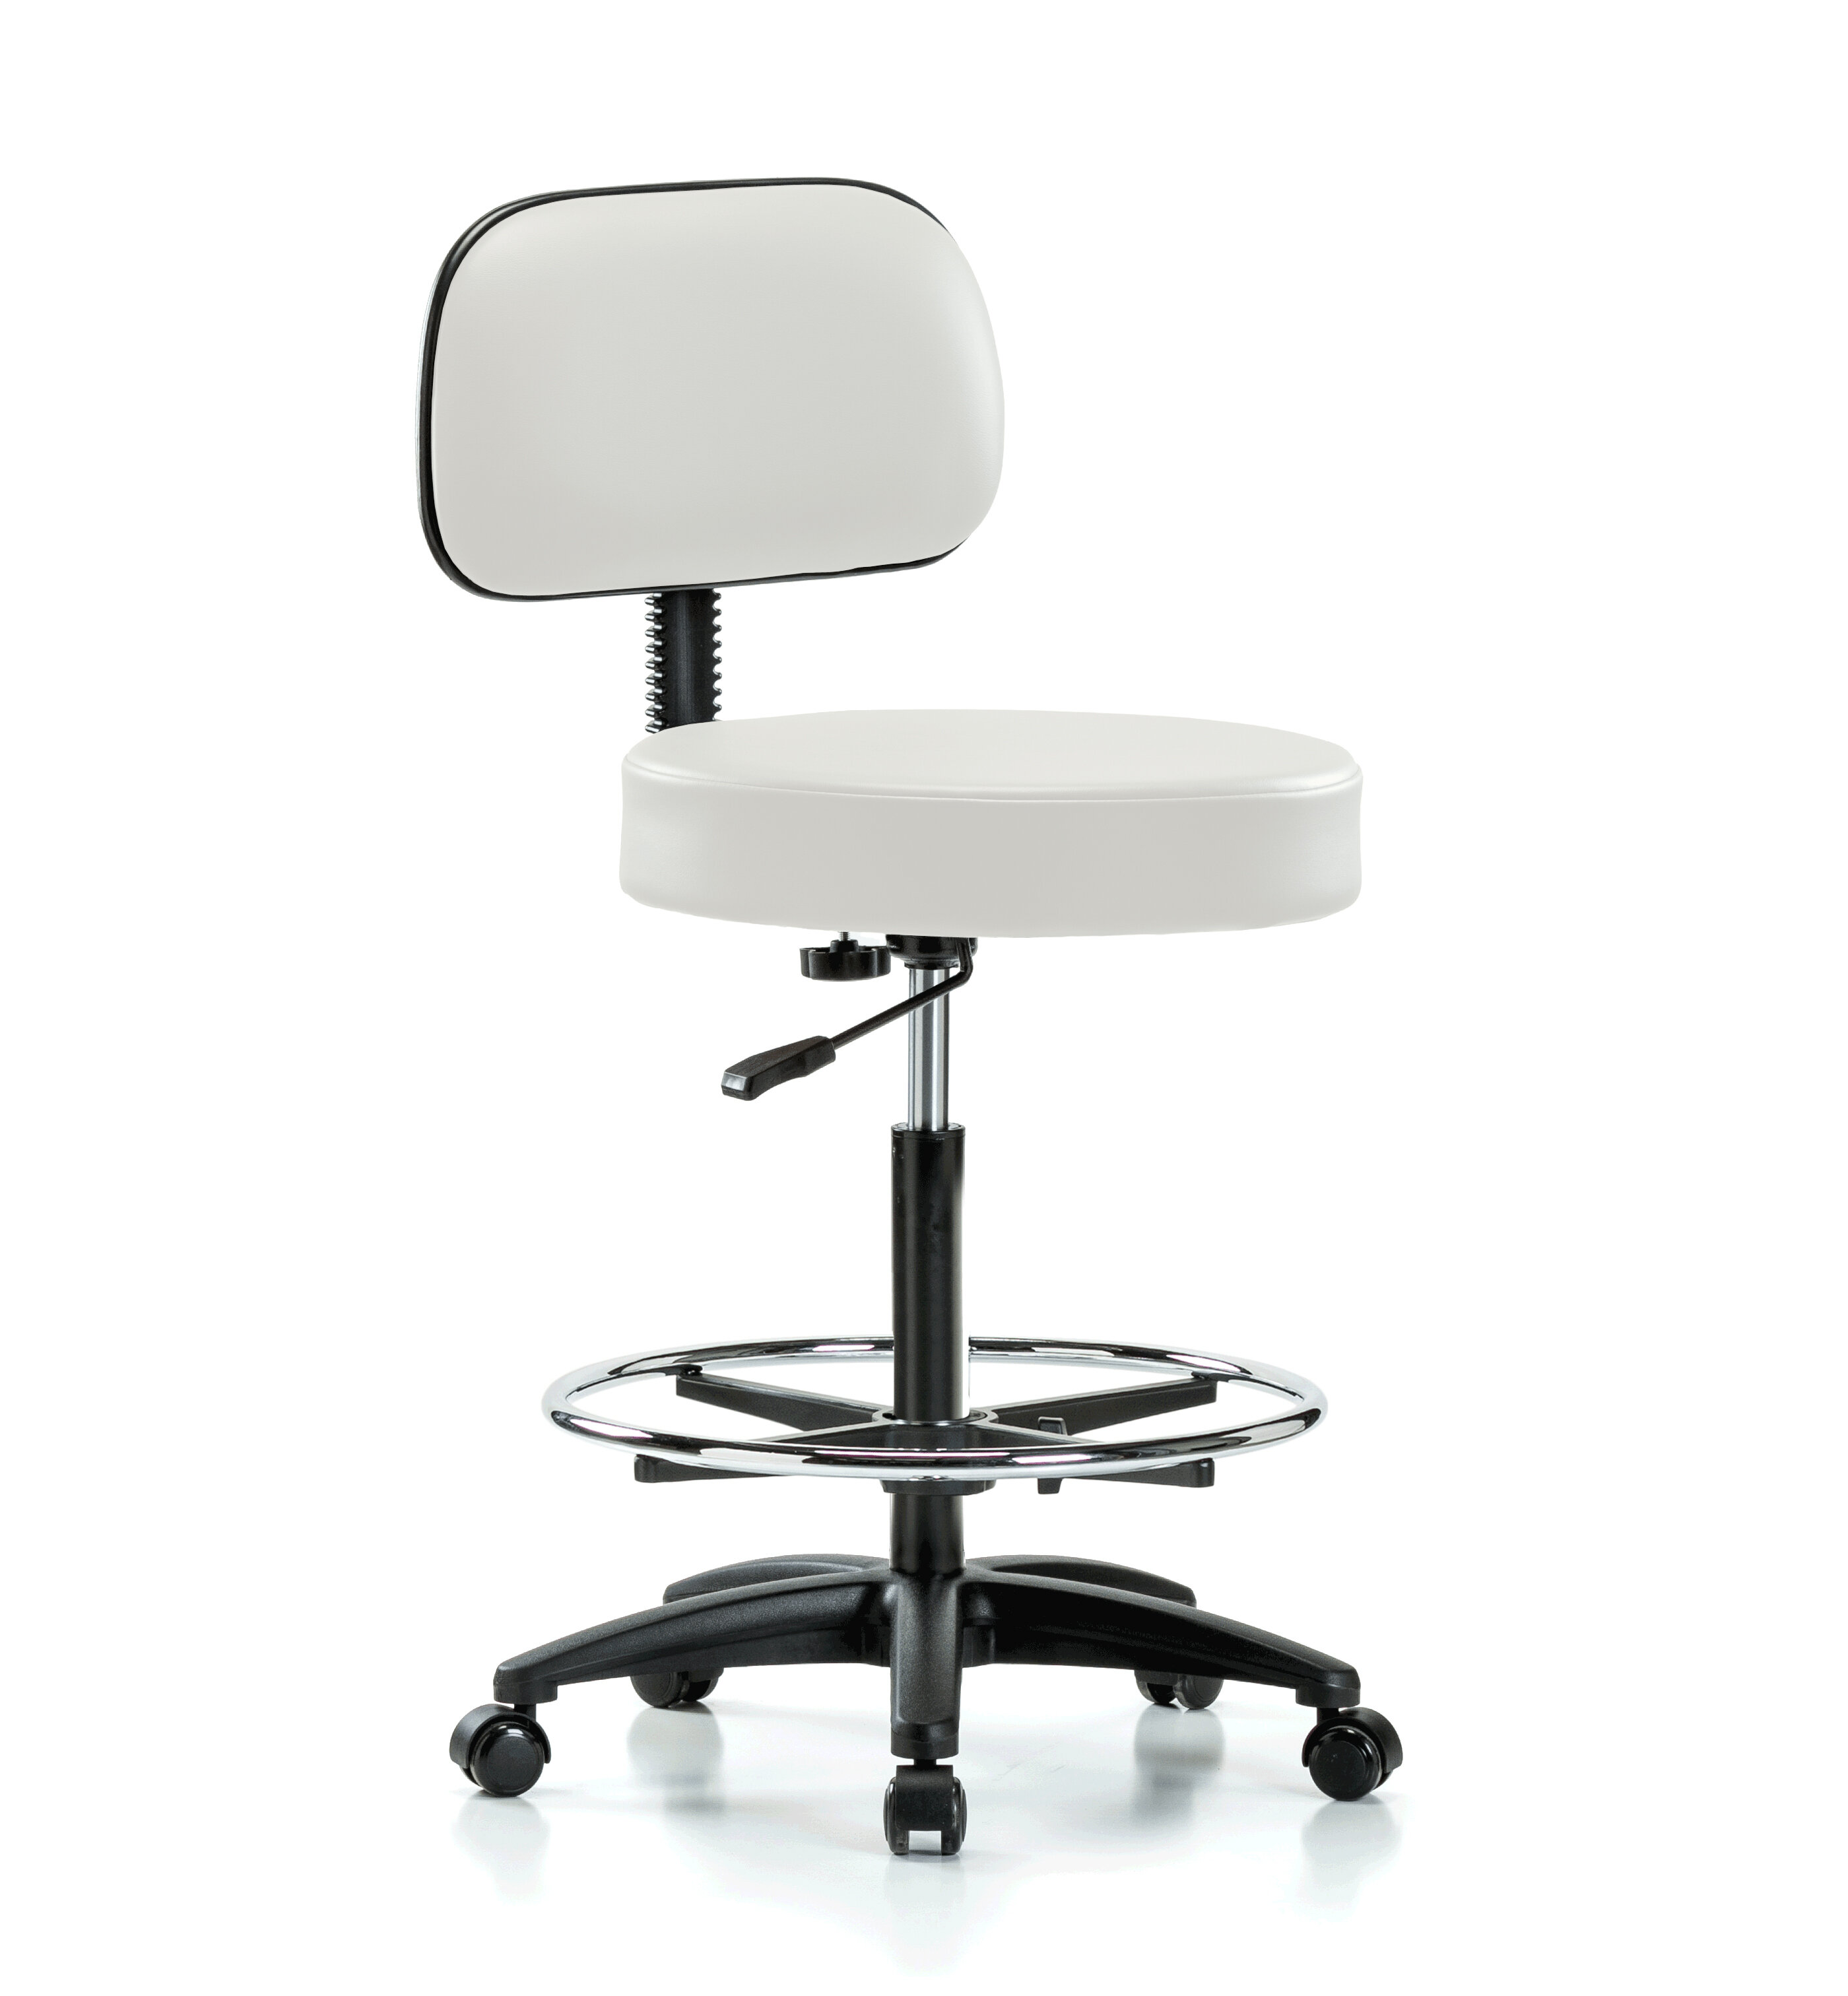 Perch Chairs Stools Height Adjustable Exam Stool With Basic Backrest And Foot Ring Wayfair